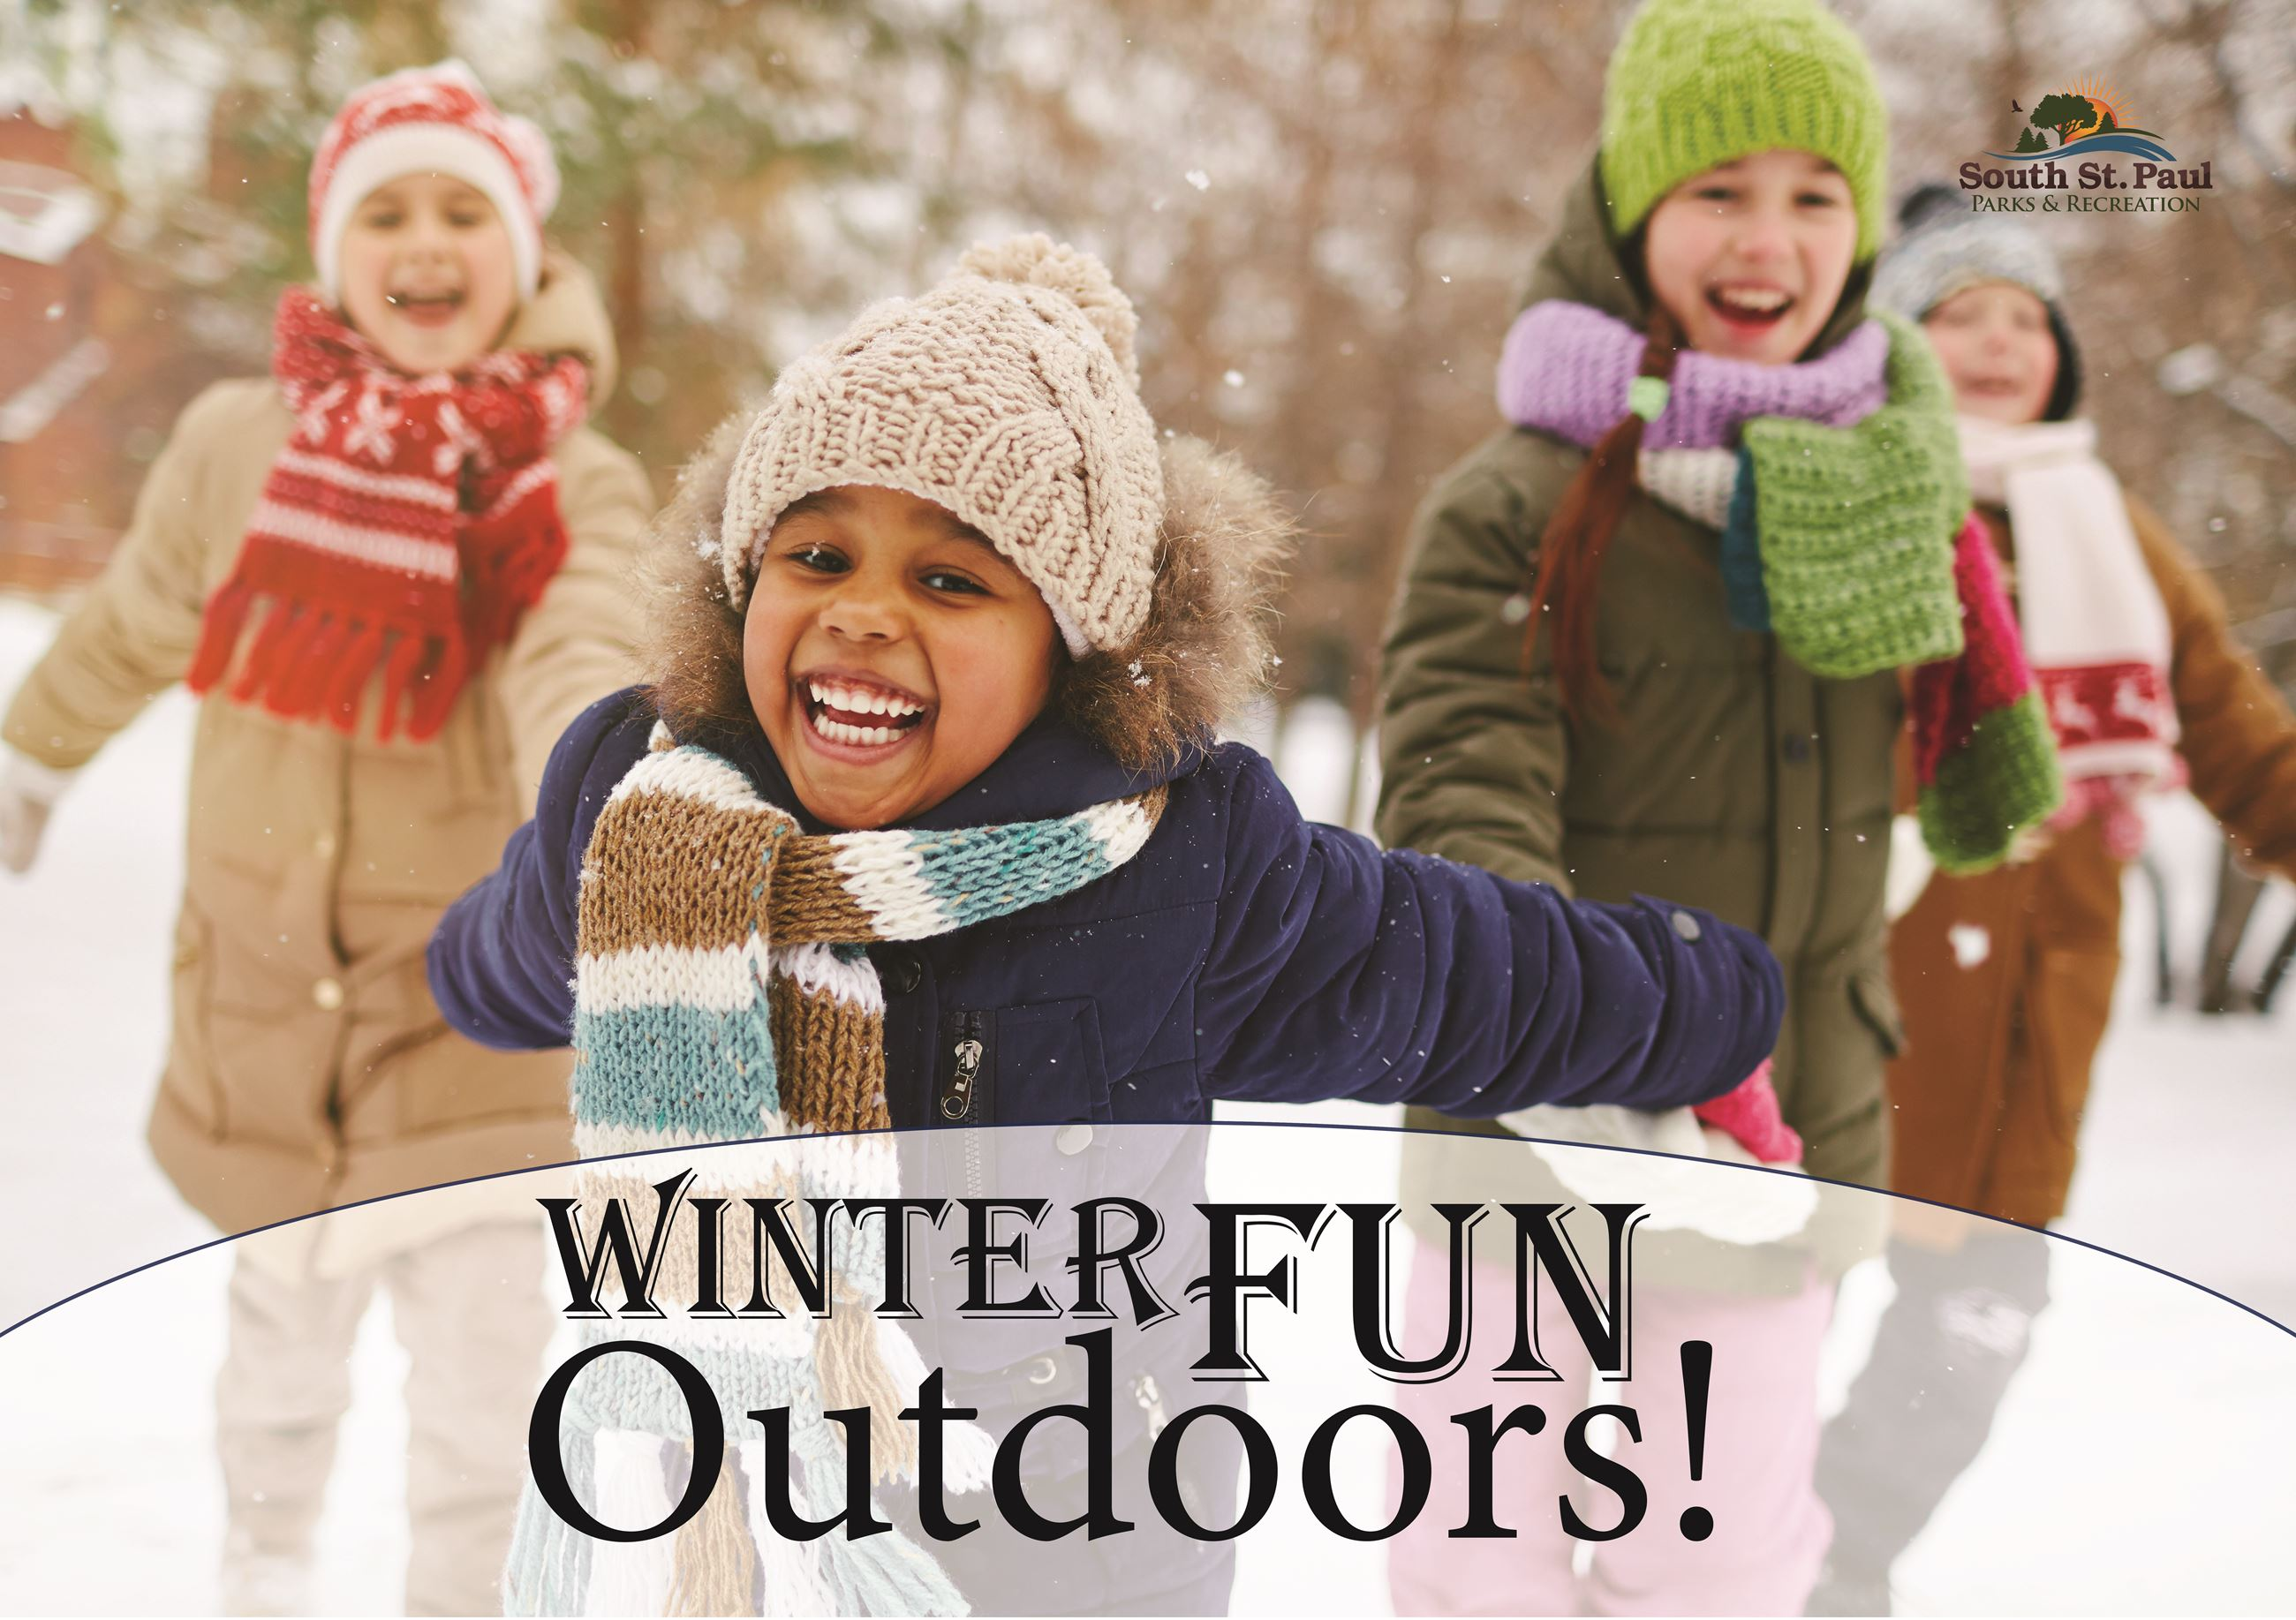 Outdoor Winter Fun Opens in new window